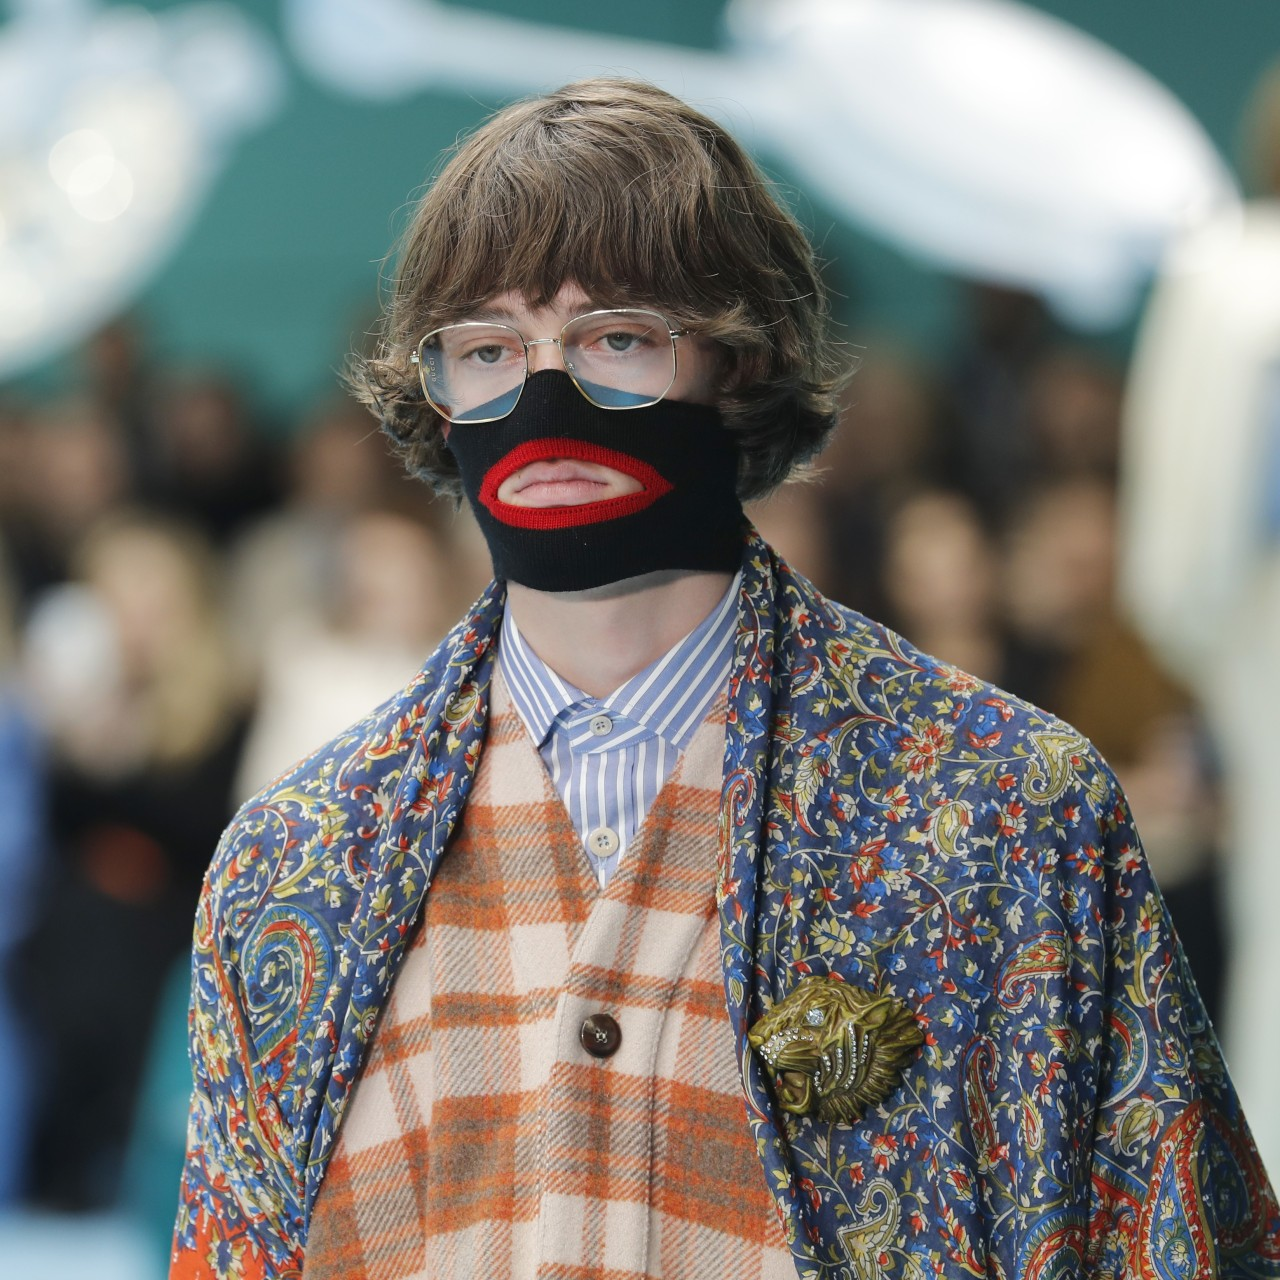 Fashion's difficult relationship with race: Gucci and